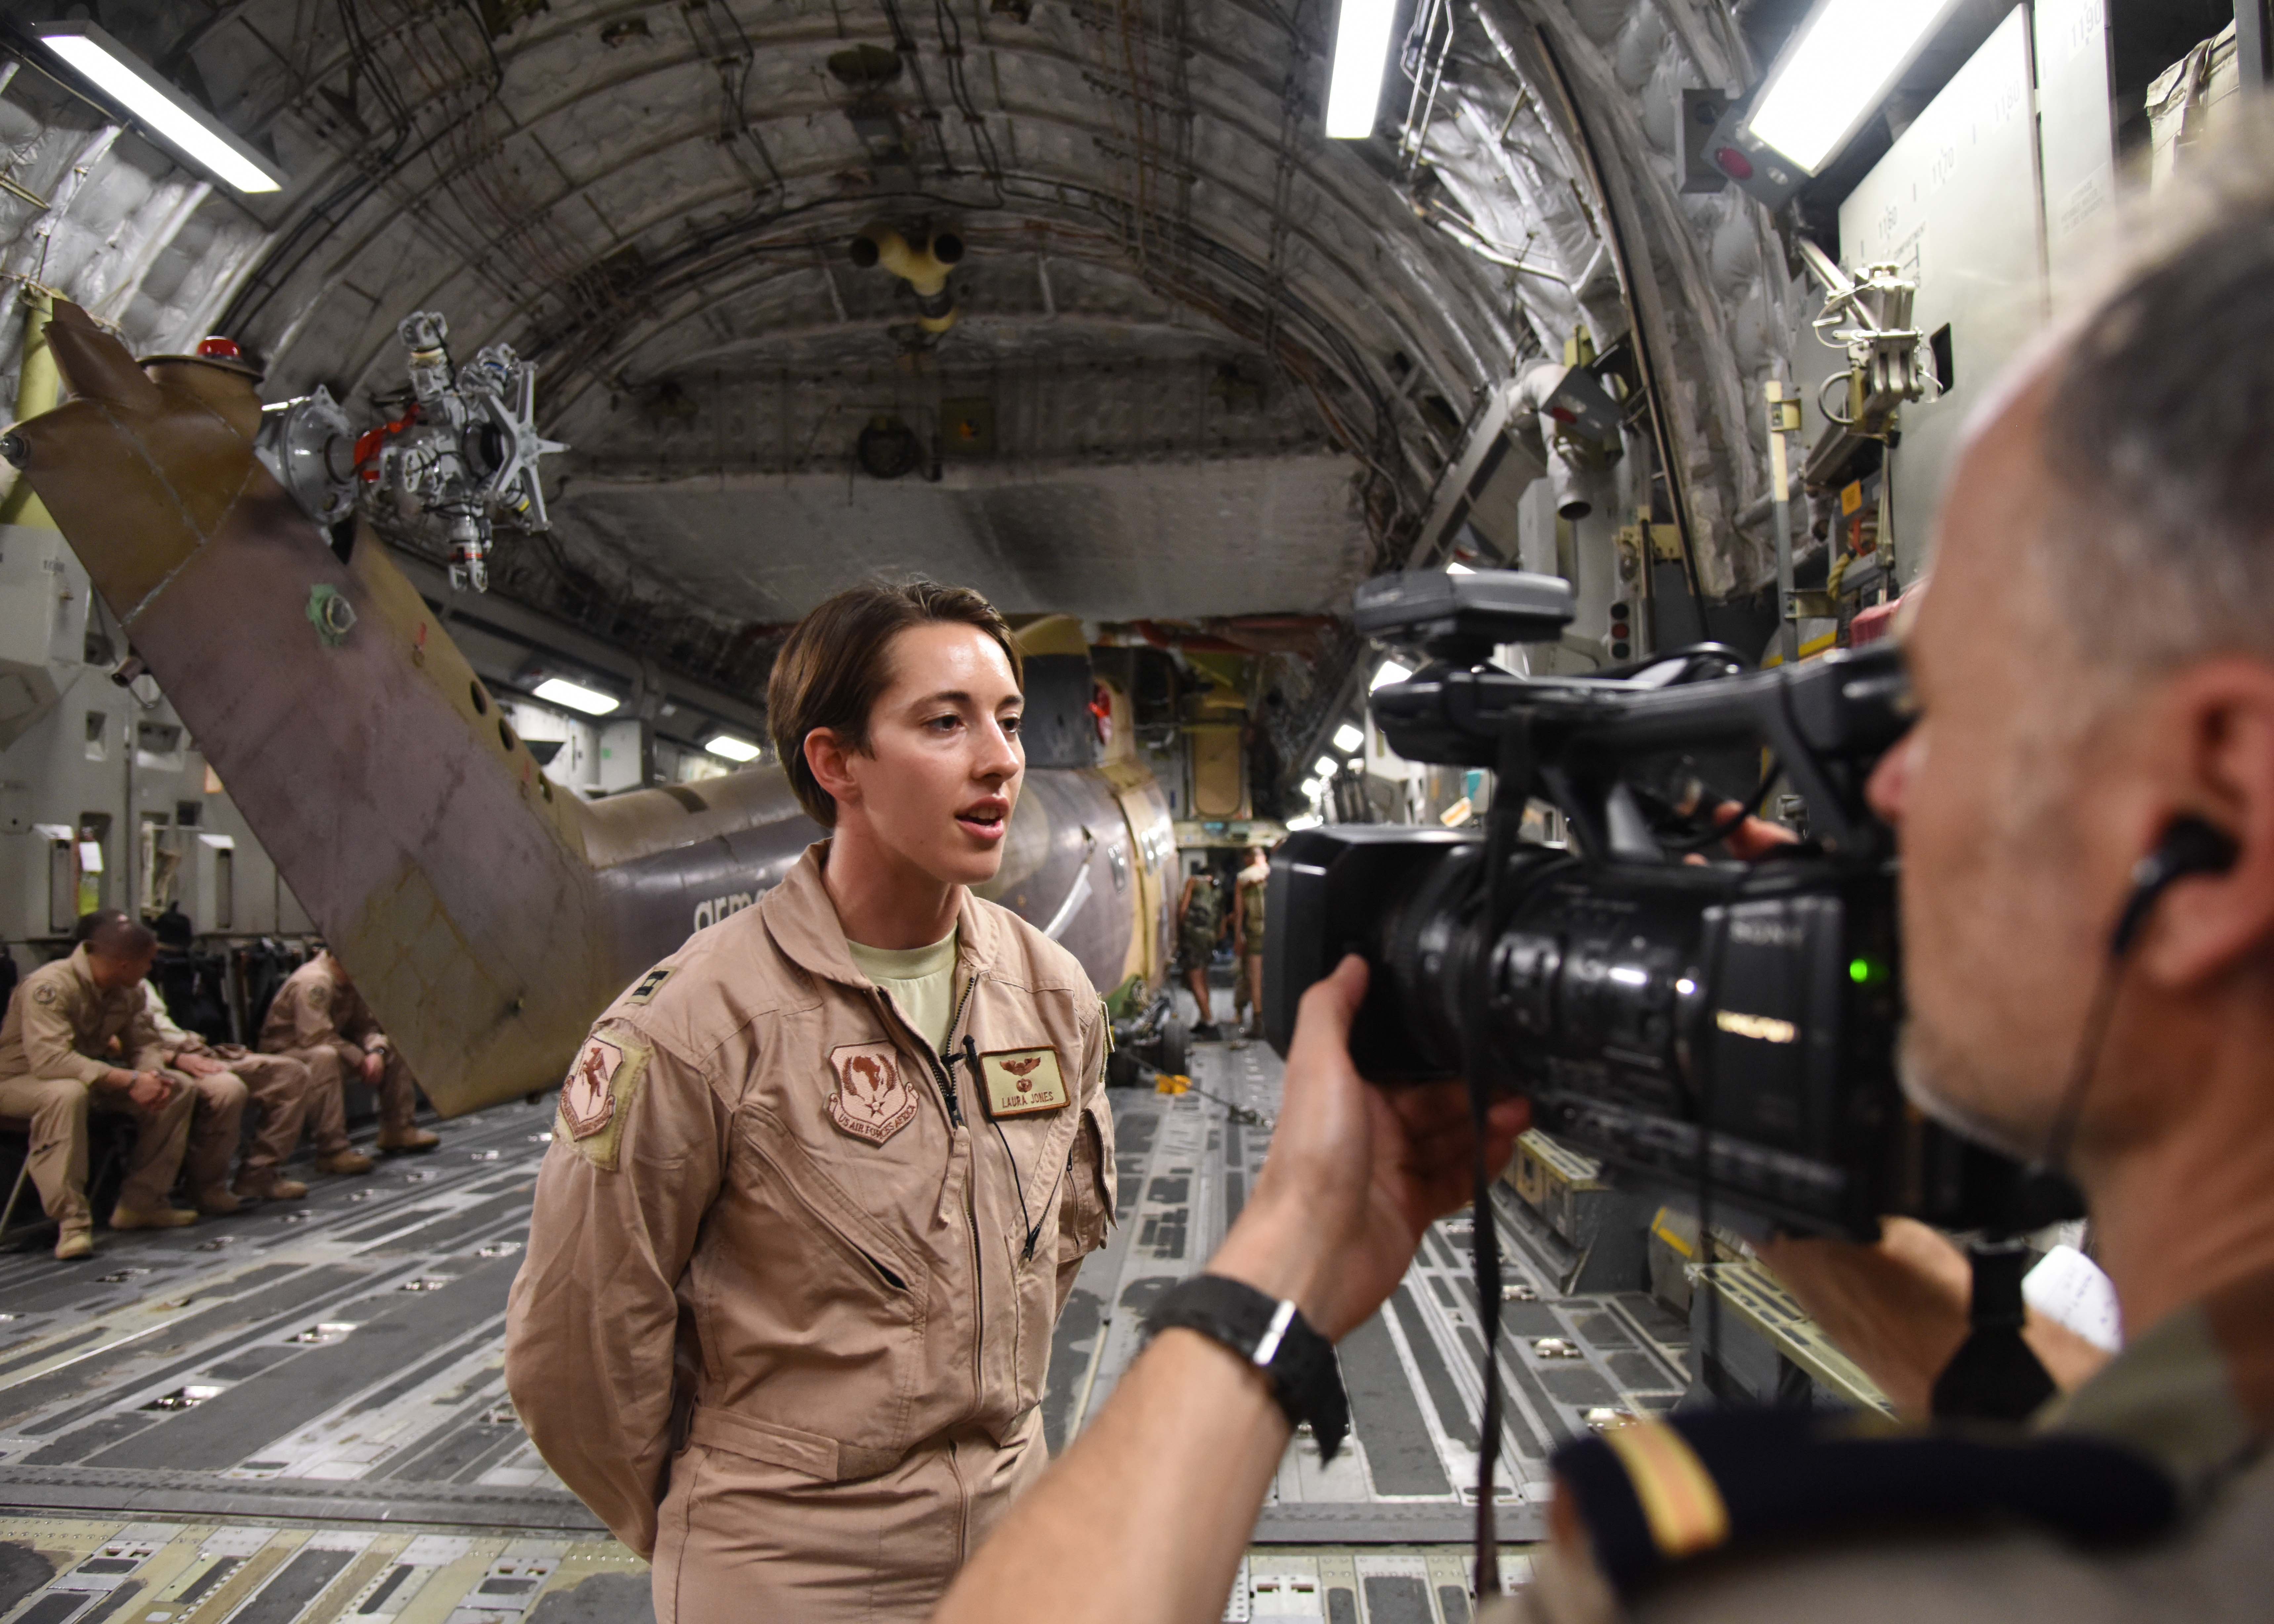 150822-N-DJ346-023 CAMP LEMONNIER, Djibouti (August 22, 2015) Air Force Capt. Laura Jones, Liaison Officer to French Forces in Djibouti, is interviewed by French Forces Public Affairs. French and U.S. service members transport two French Puma Helicopters and associated Passengers & Cargo to N'Djamena aboard a U.S. Air Force C-17 Globemaster. The helicopters support French operations at the intersecting borders of Libya, Chad and Niger deterring weapons and drug smuggling, and jihadist regularly crossing between nations. This is the first time France has received support from U.S. Forces in Djibouti for any mission outside of East Africa. (U.S. Navy photo by Chief Mass Communication Specialist Donald W. Randall/Released)